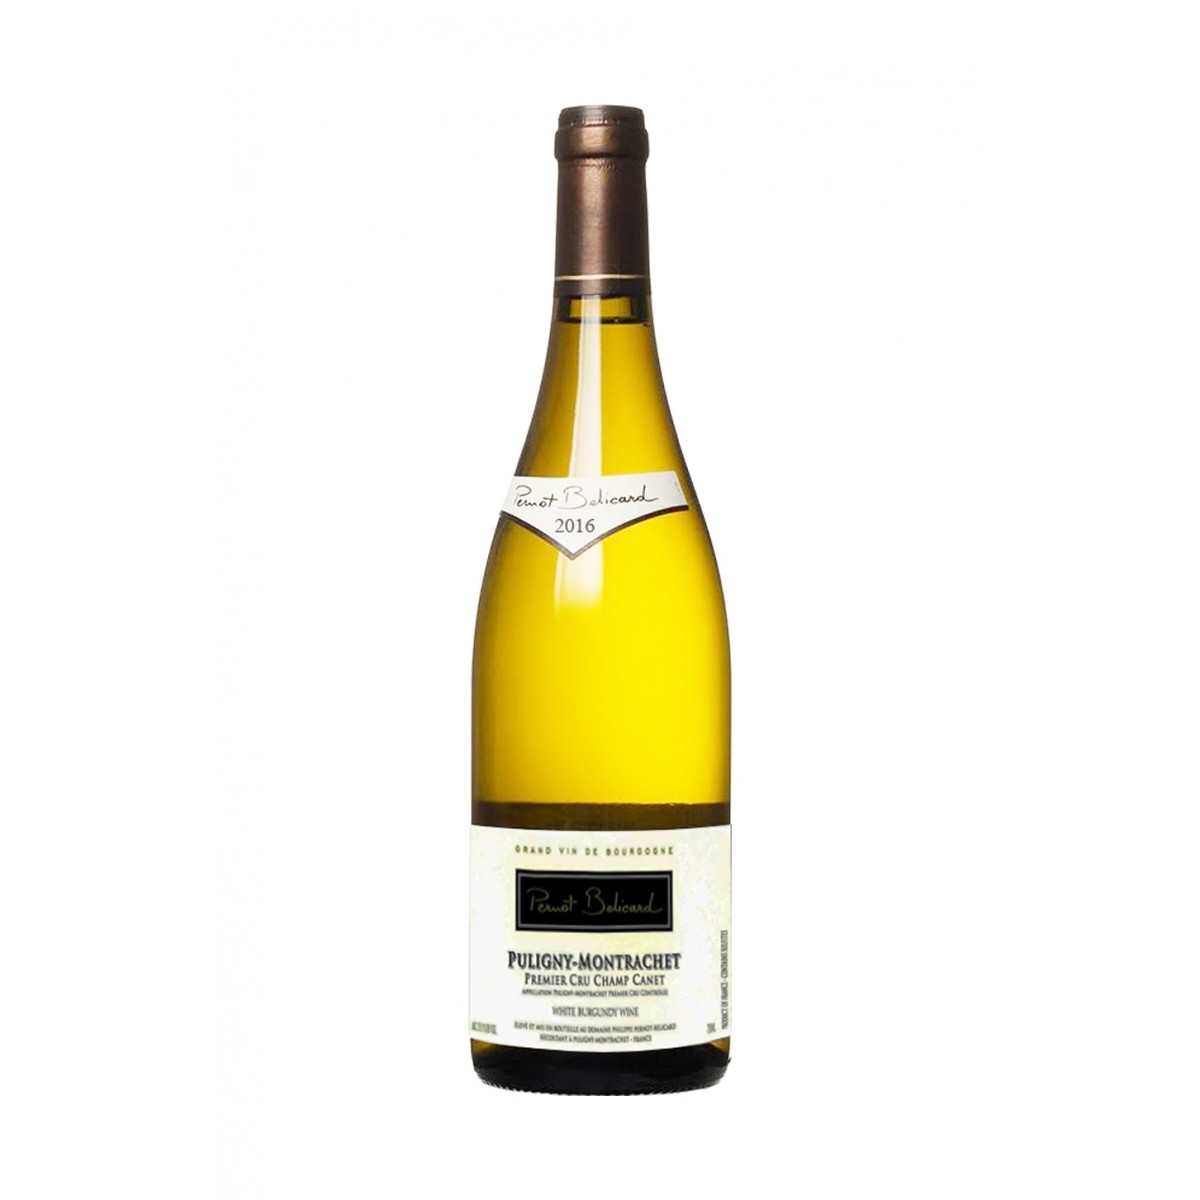 Puligny Montrachet 1er Cru Champ Canet 2016 - Domaine Pernot Belicard